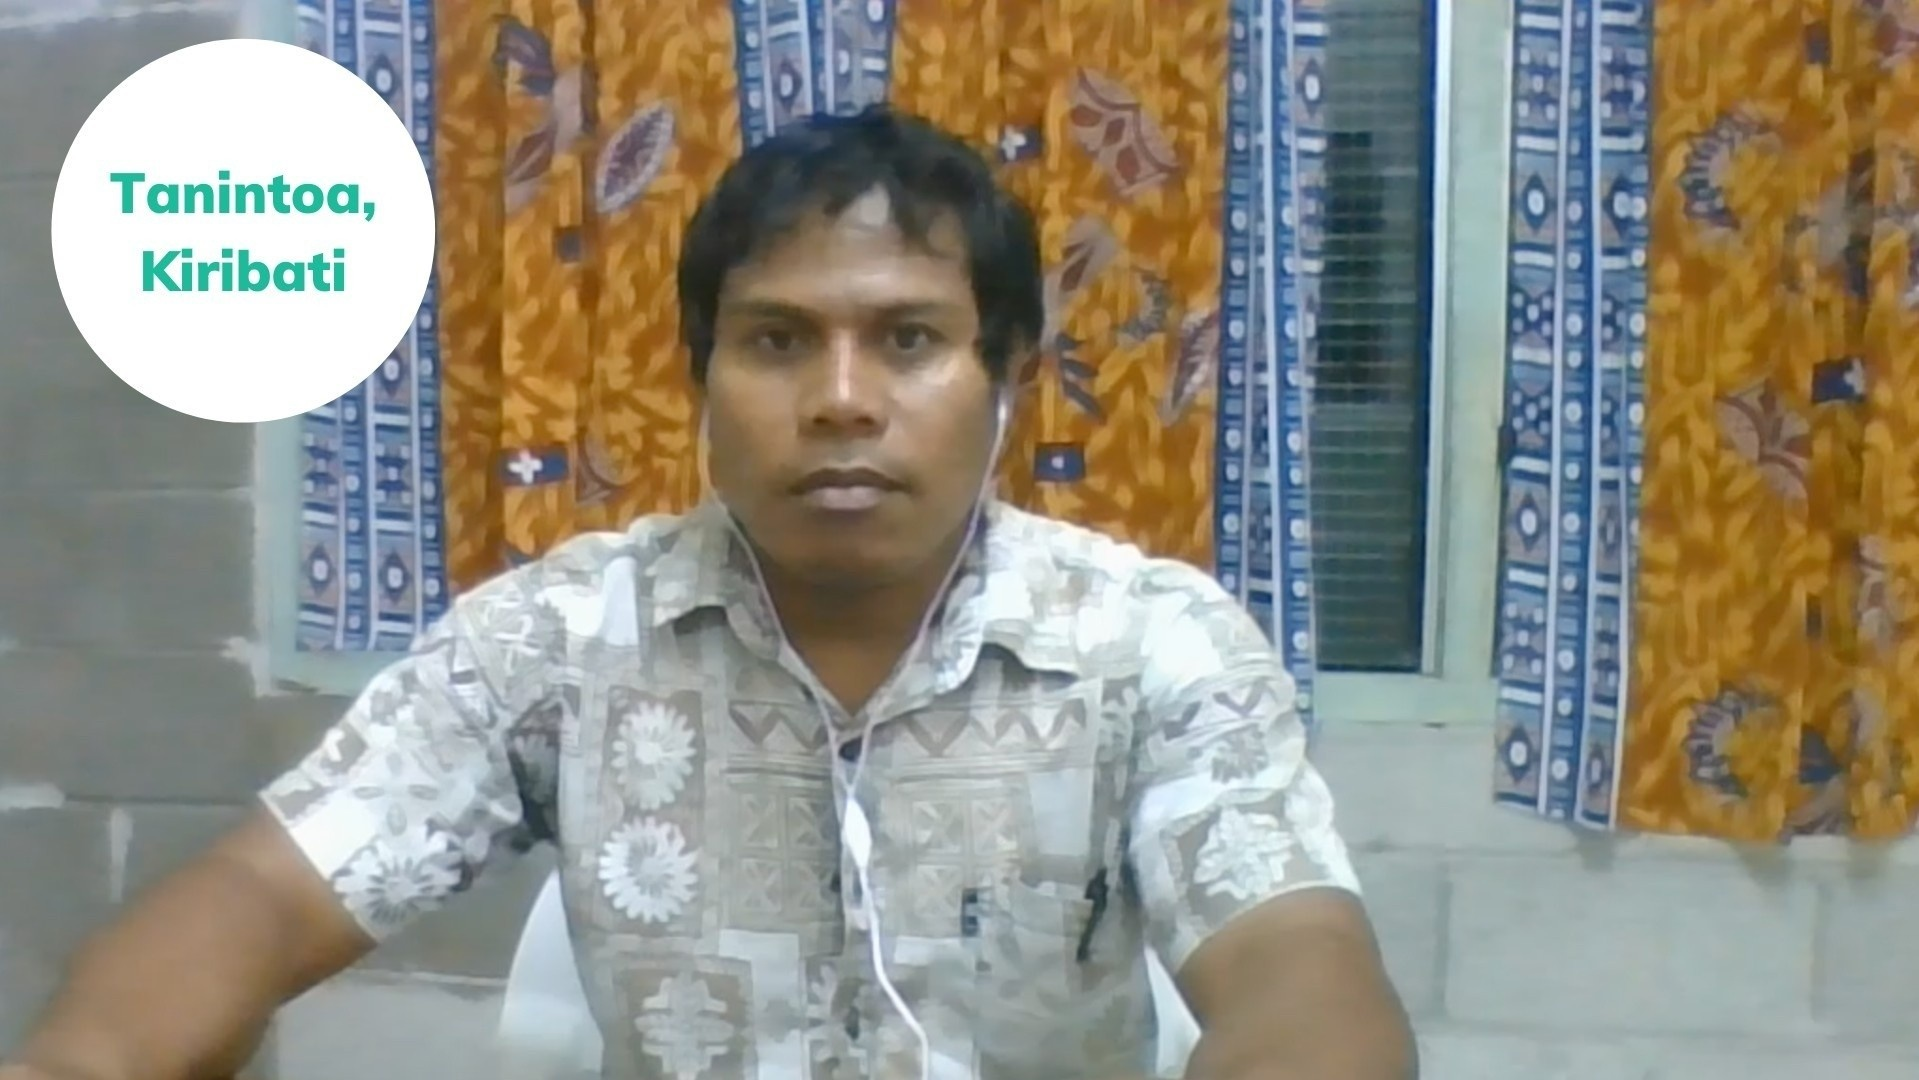 Tanintoa from Kiribati shares his success story after joining the English-Everyday speaking course